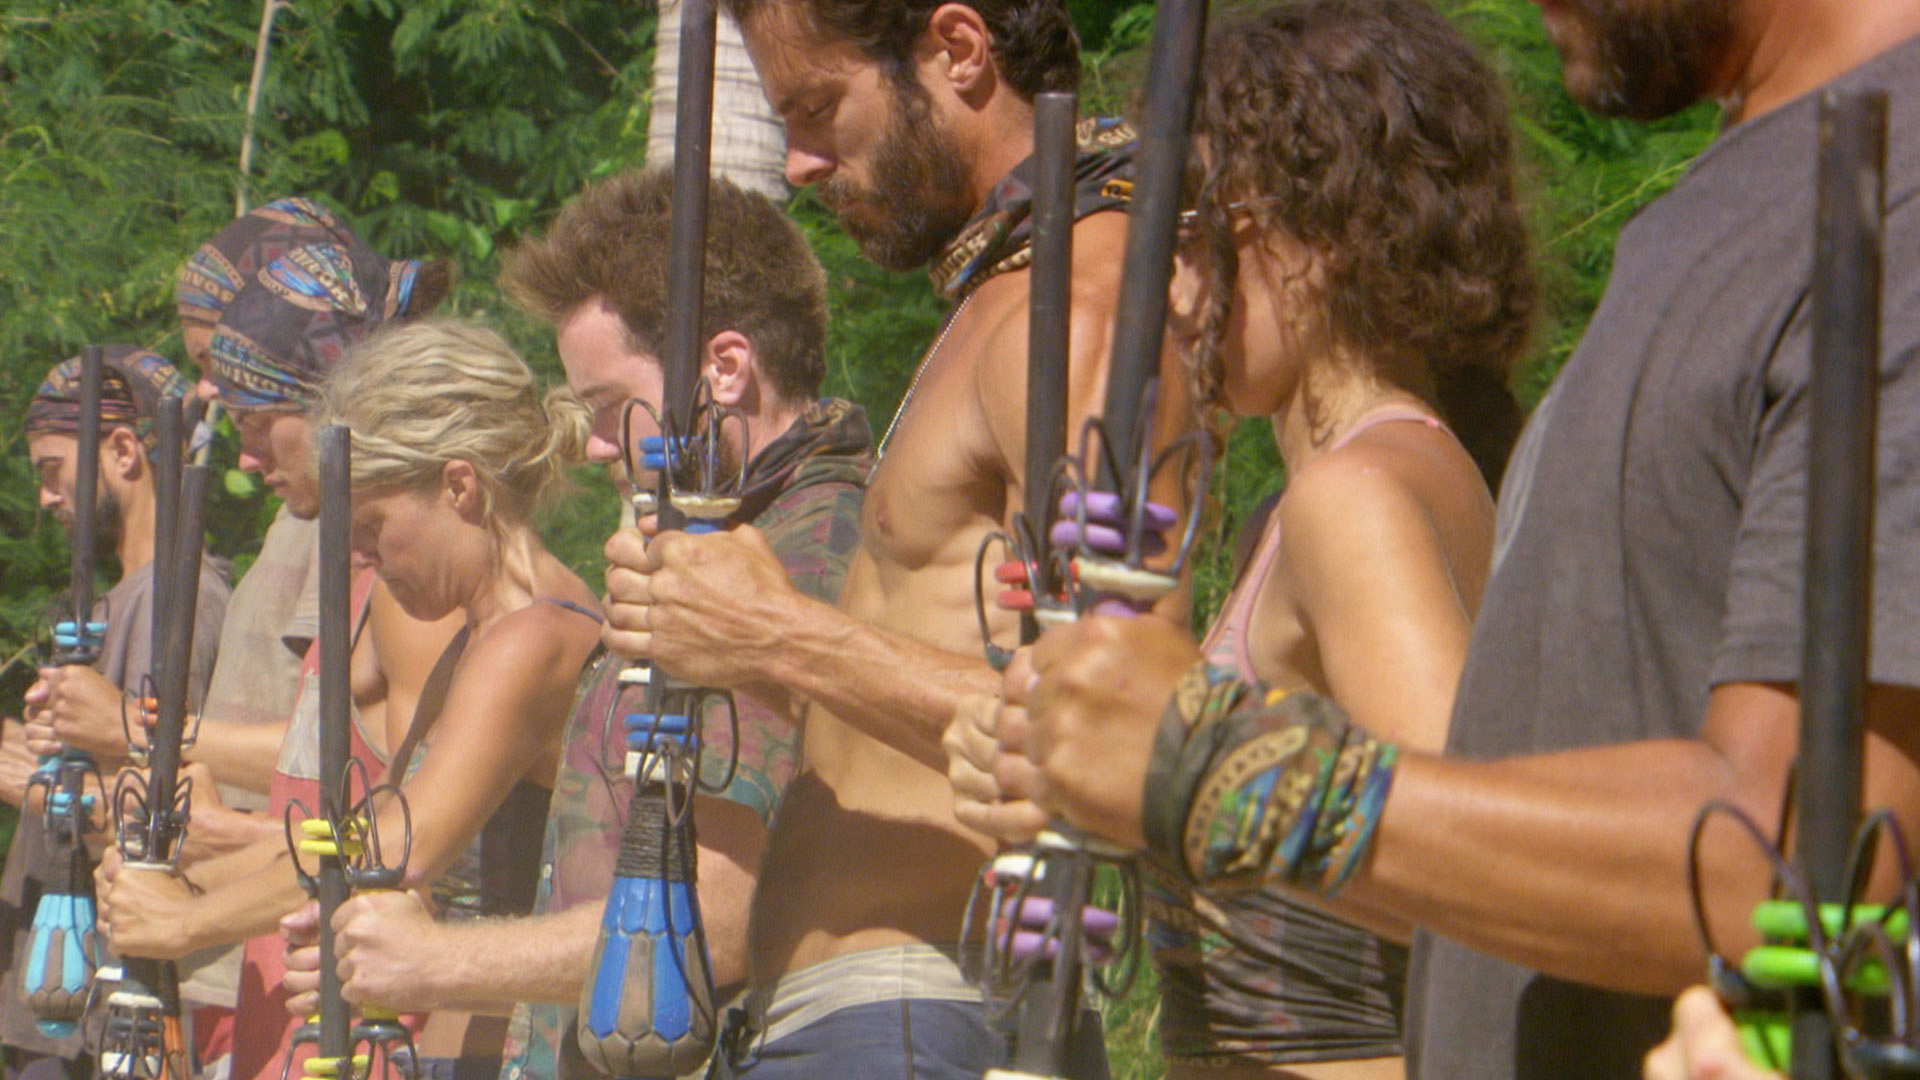 Who will win the next Individual Immunity?